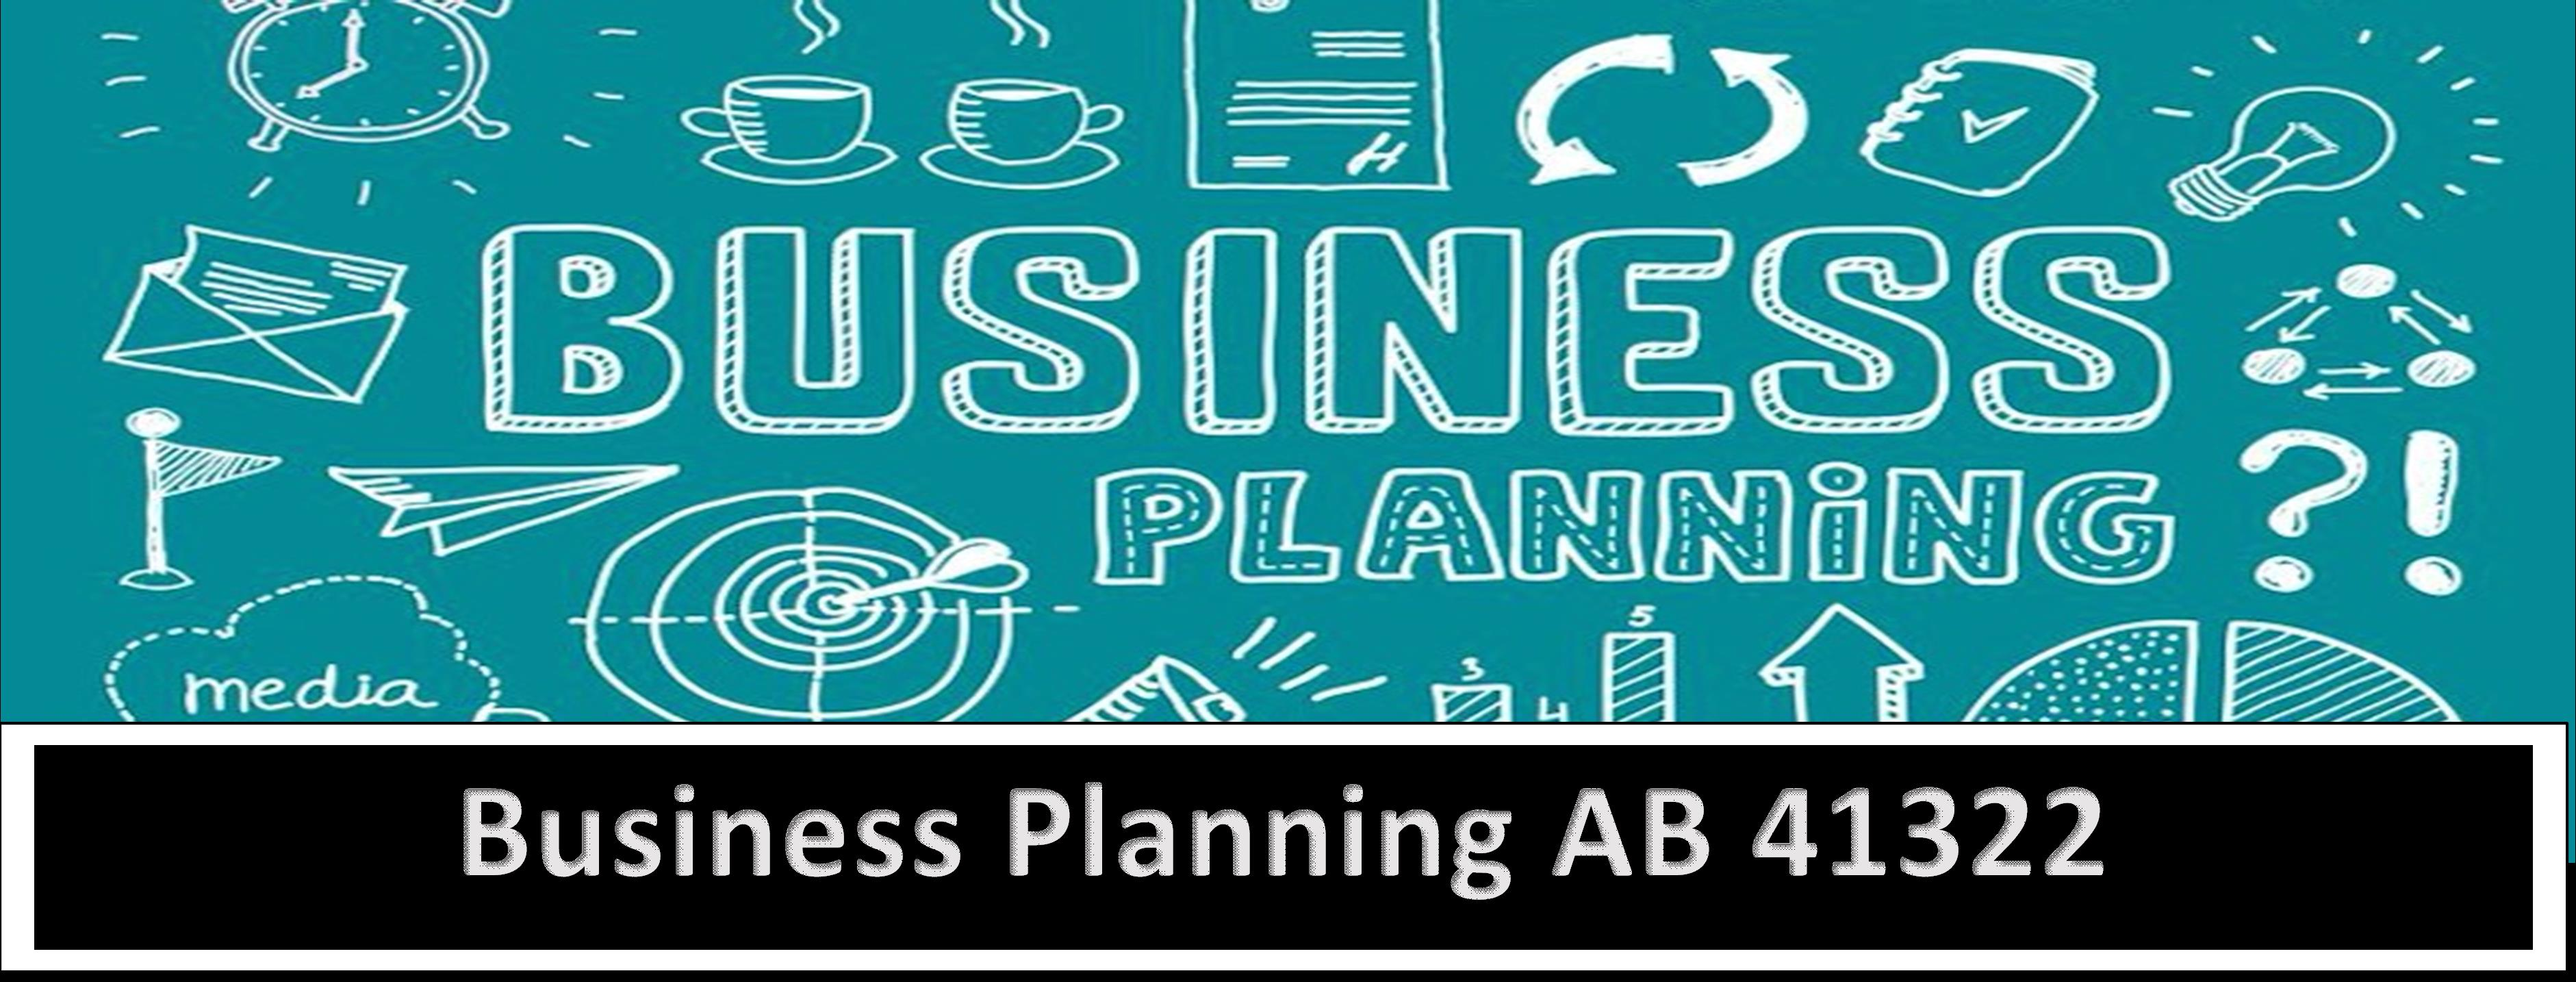 AB 41322 Business Planning - 2021